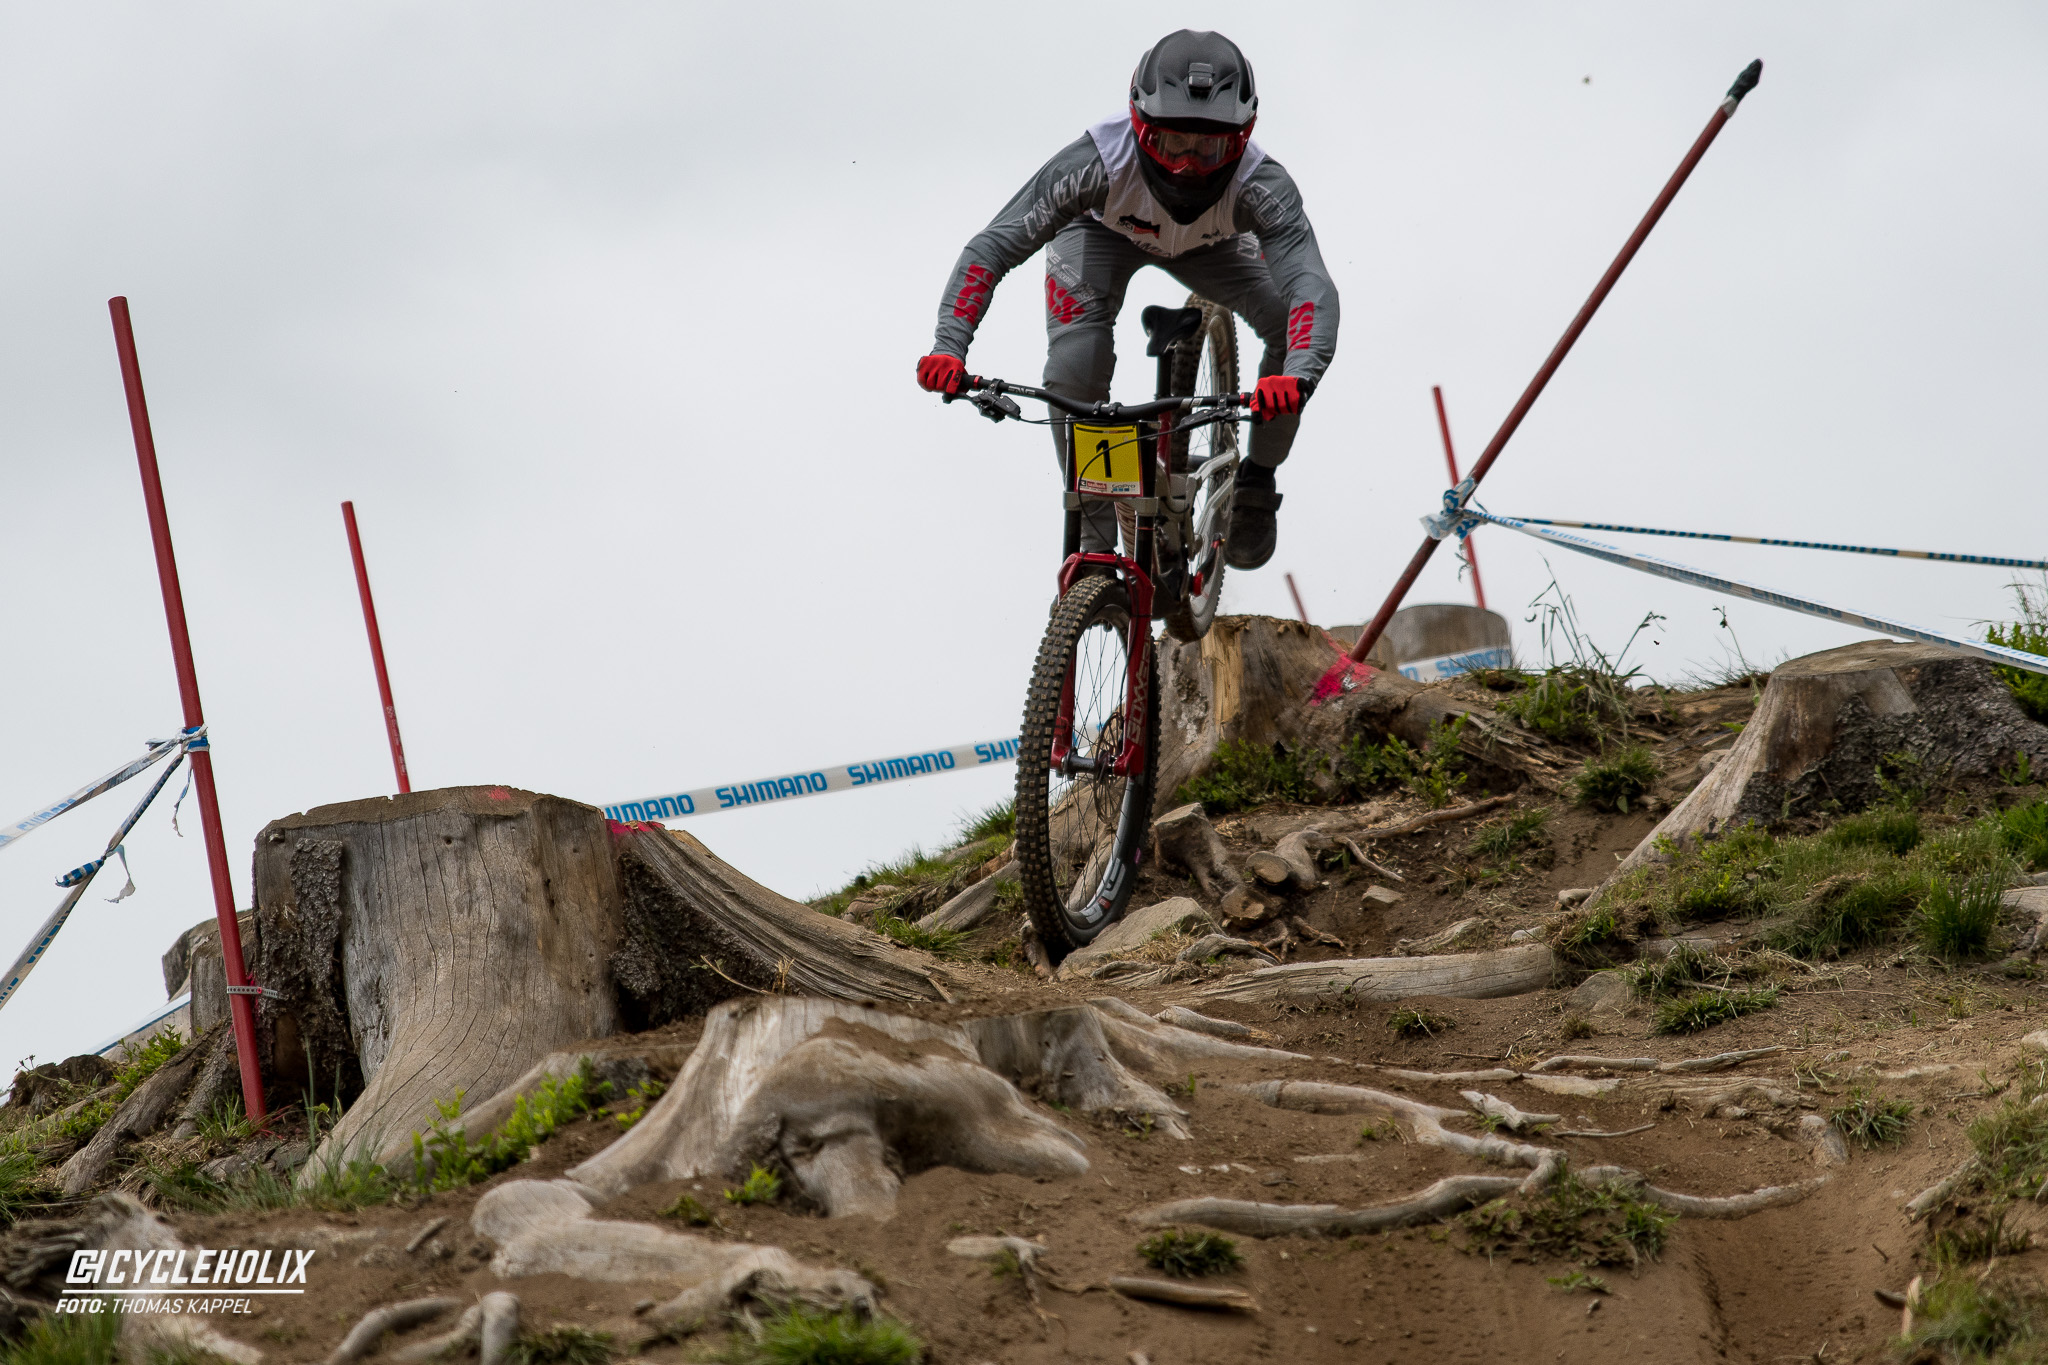 2019 Downhill Worldcup Leogang Finale Action QA 13